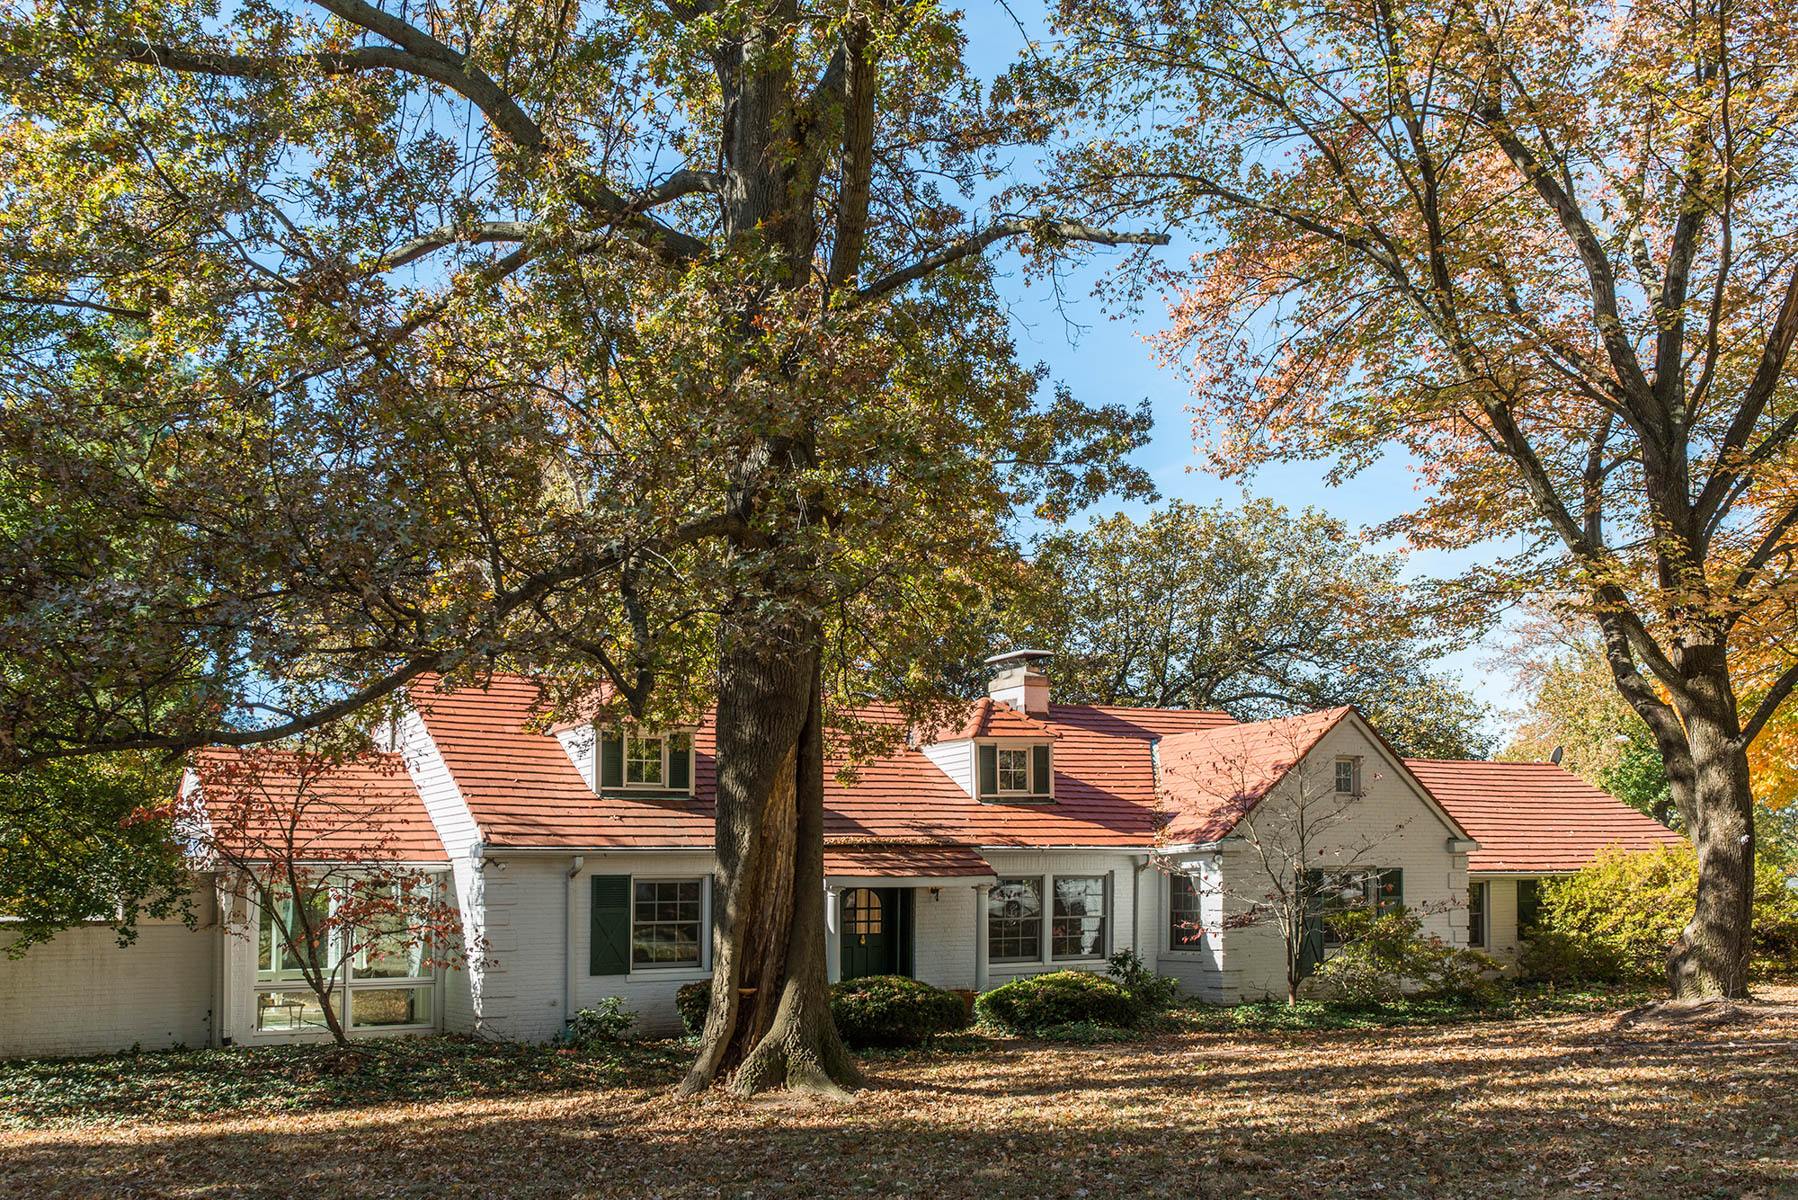 Single Family Home for Sale at Timeless Appeal 47 Godwin Lane St. Louis, Missouri, 63124 United States